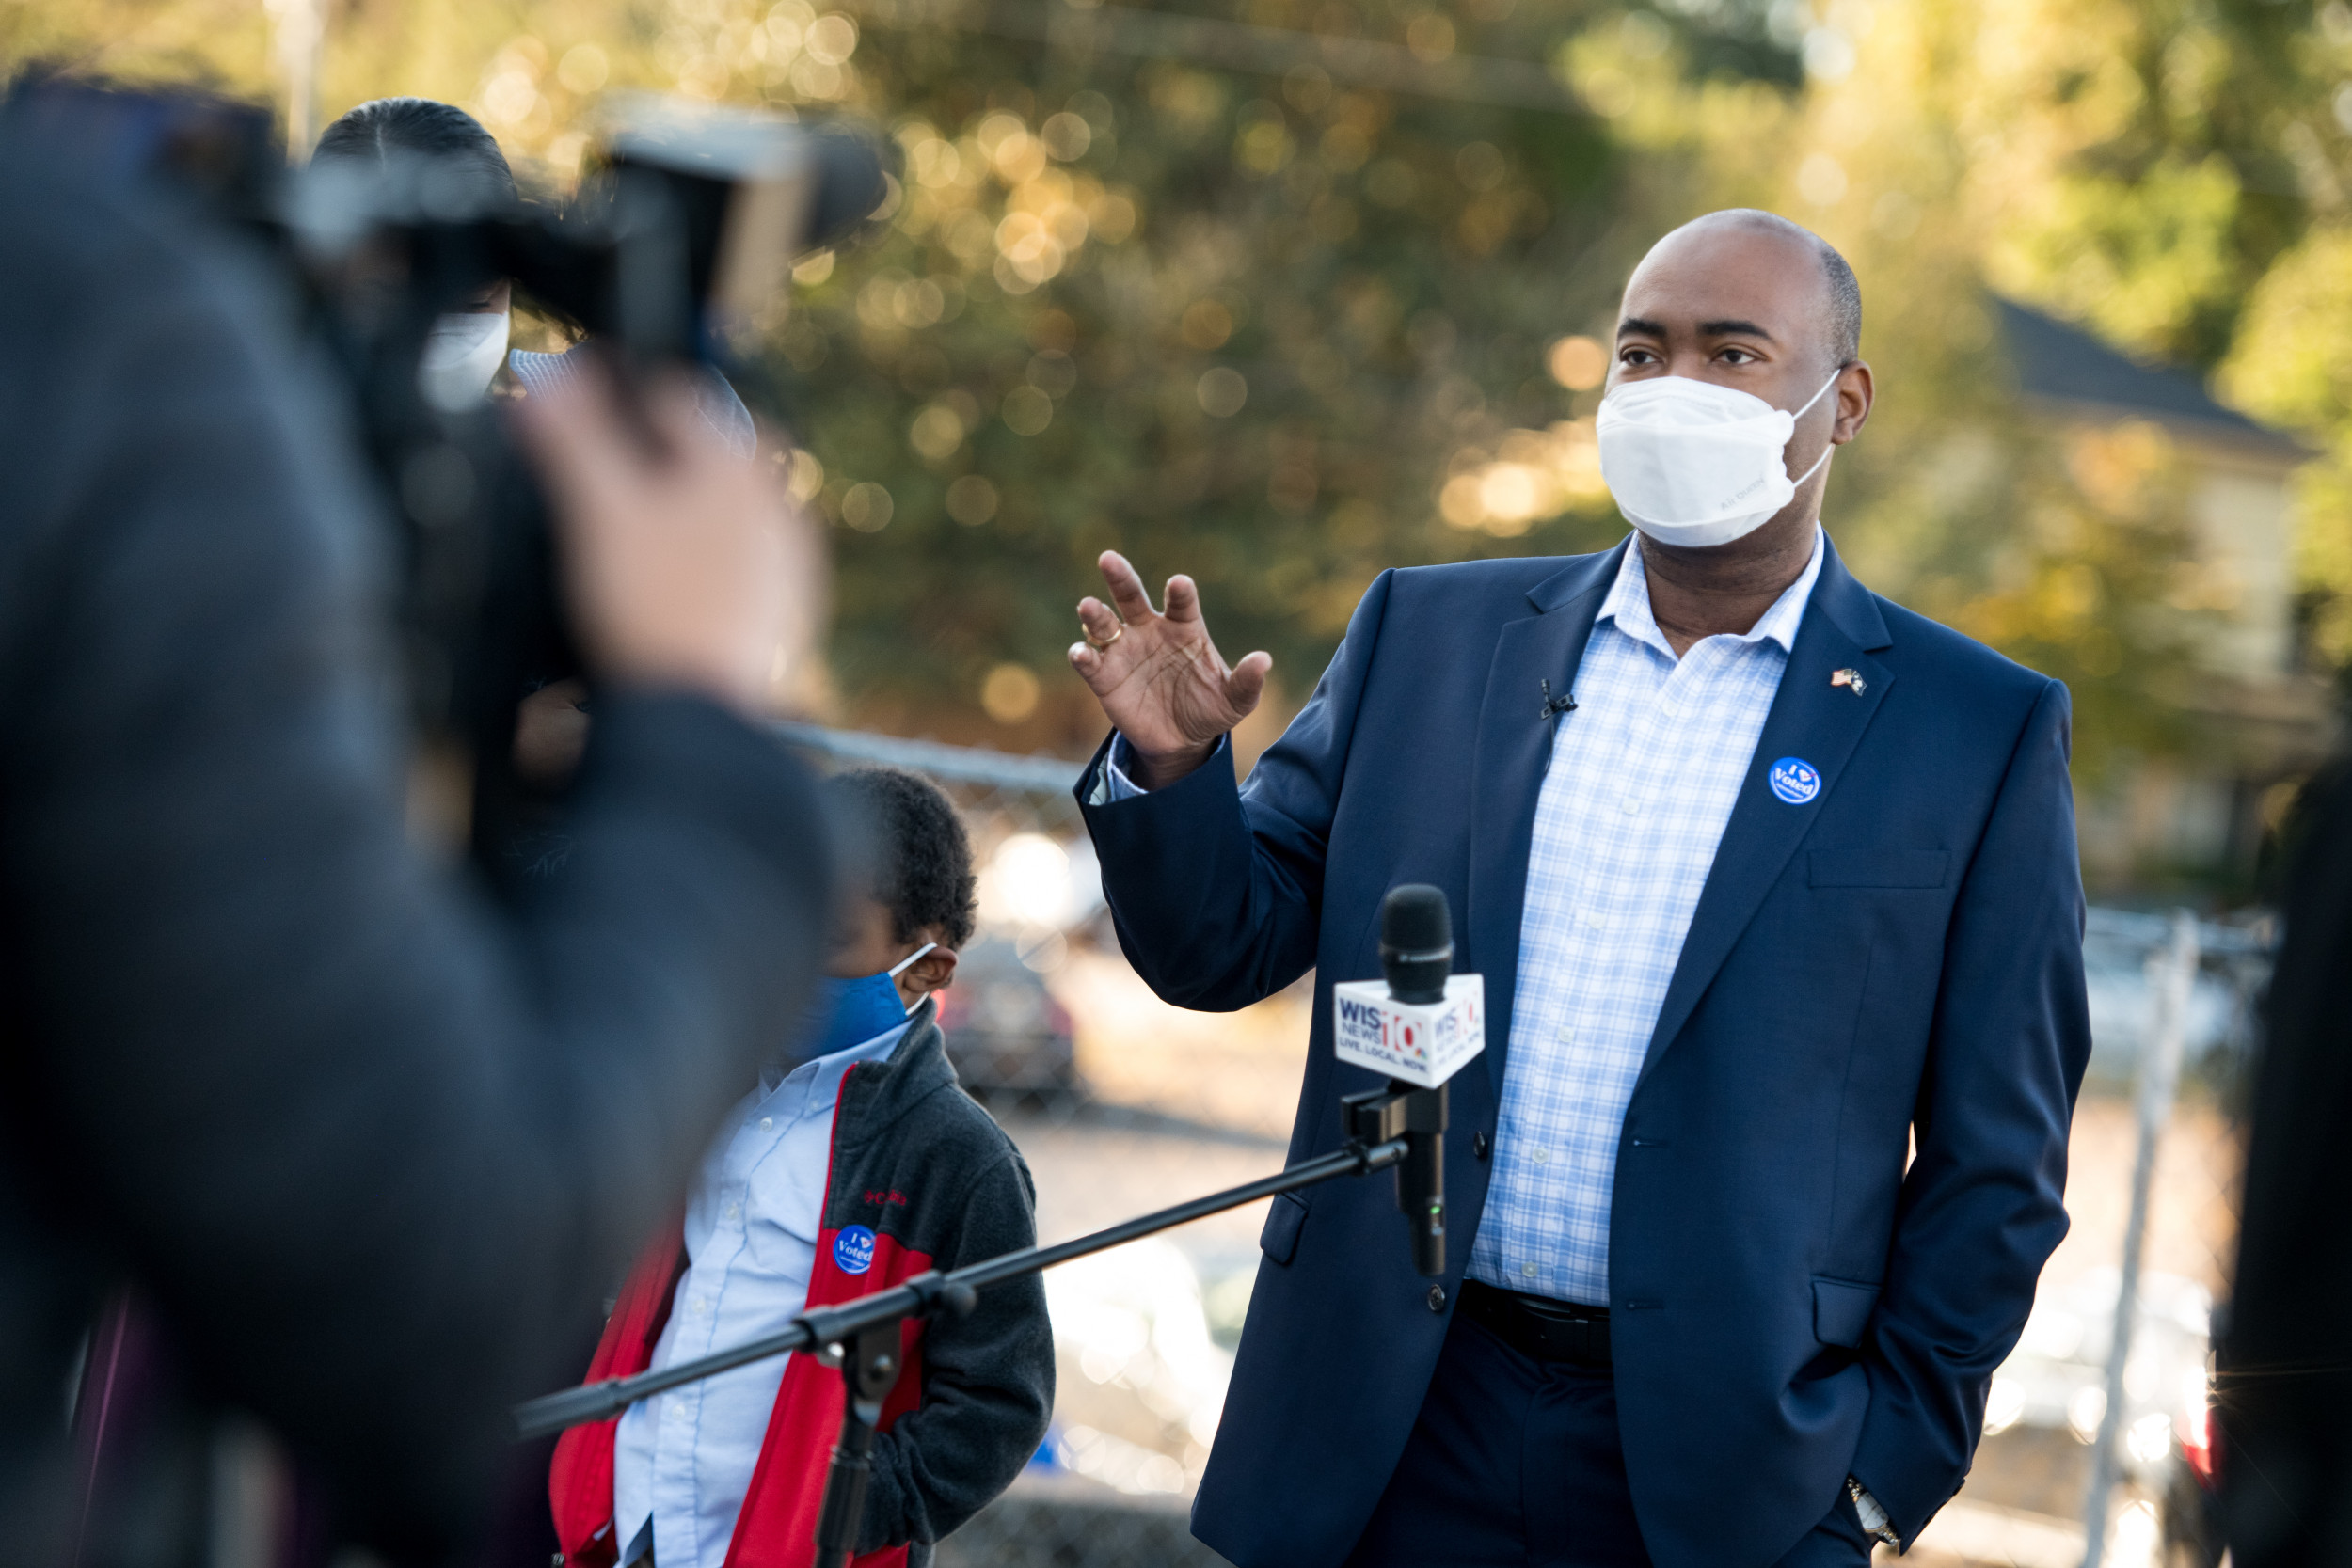 Jaime Harrison spent $60 million on campaign as polls show him leading Lindsey Graham